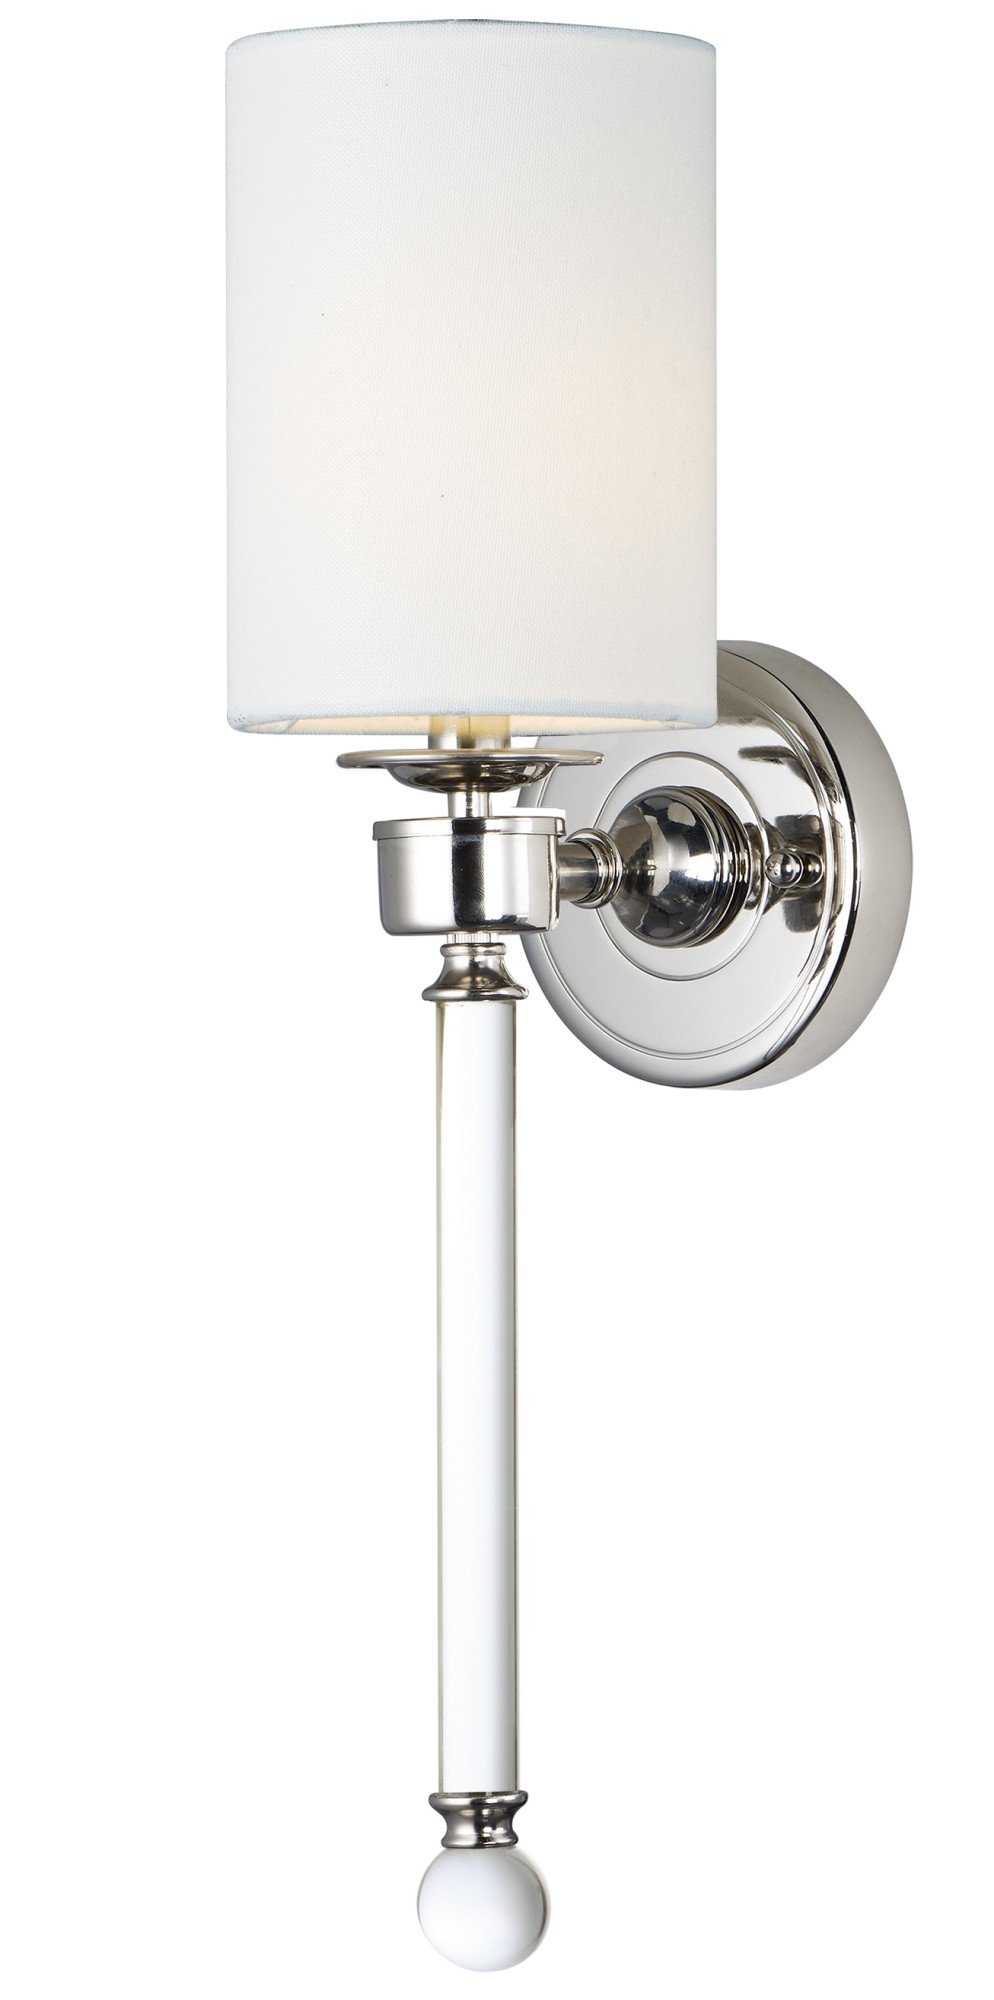 """Maxim 16109WT Nickel Lucent 21"""" Wall Sconce With Fabric ..."""